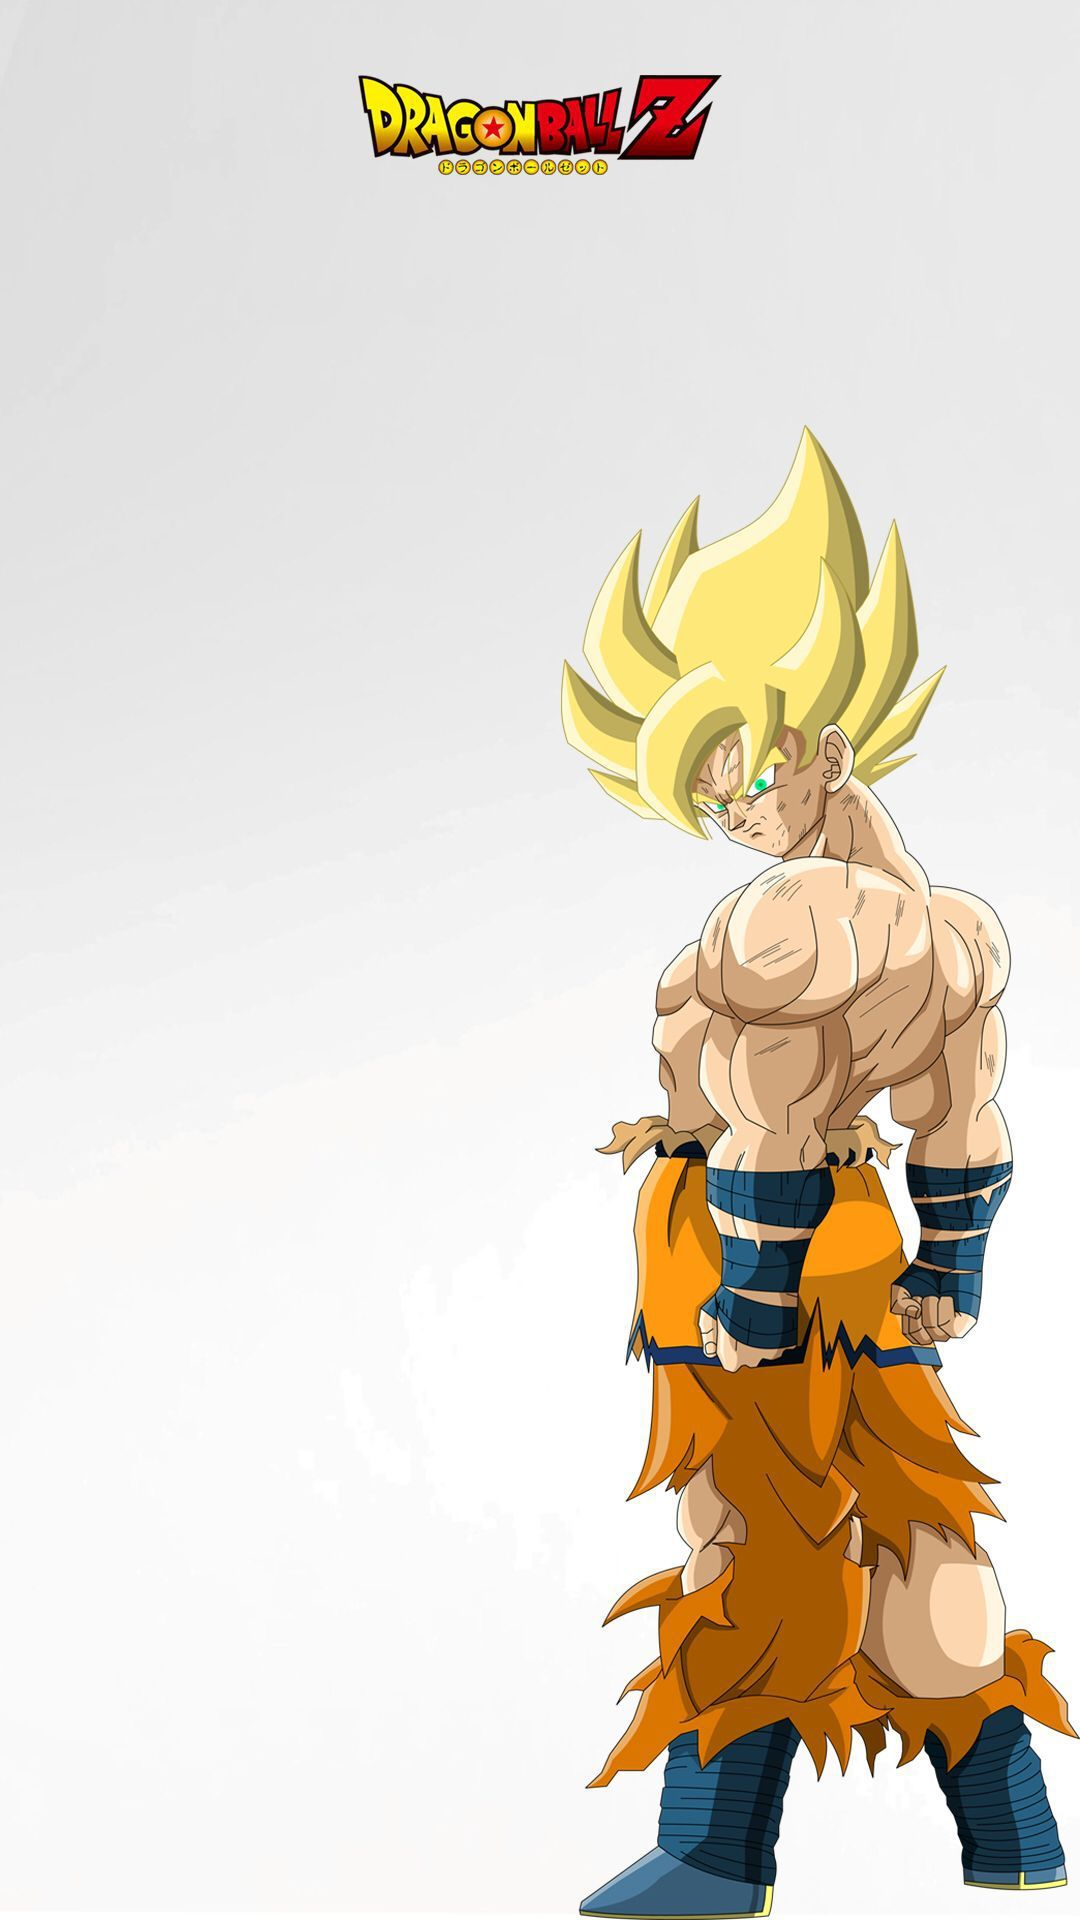 goku live wallpaper iphone #166501. goku live wallpaper iphone #166501 Dragon Ball Z ...